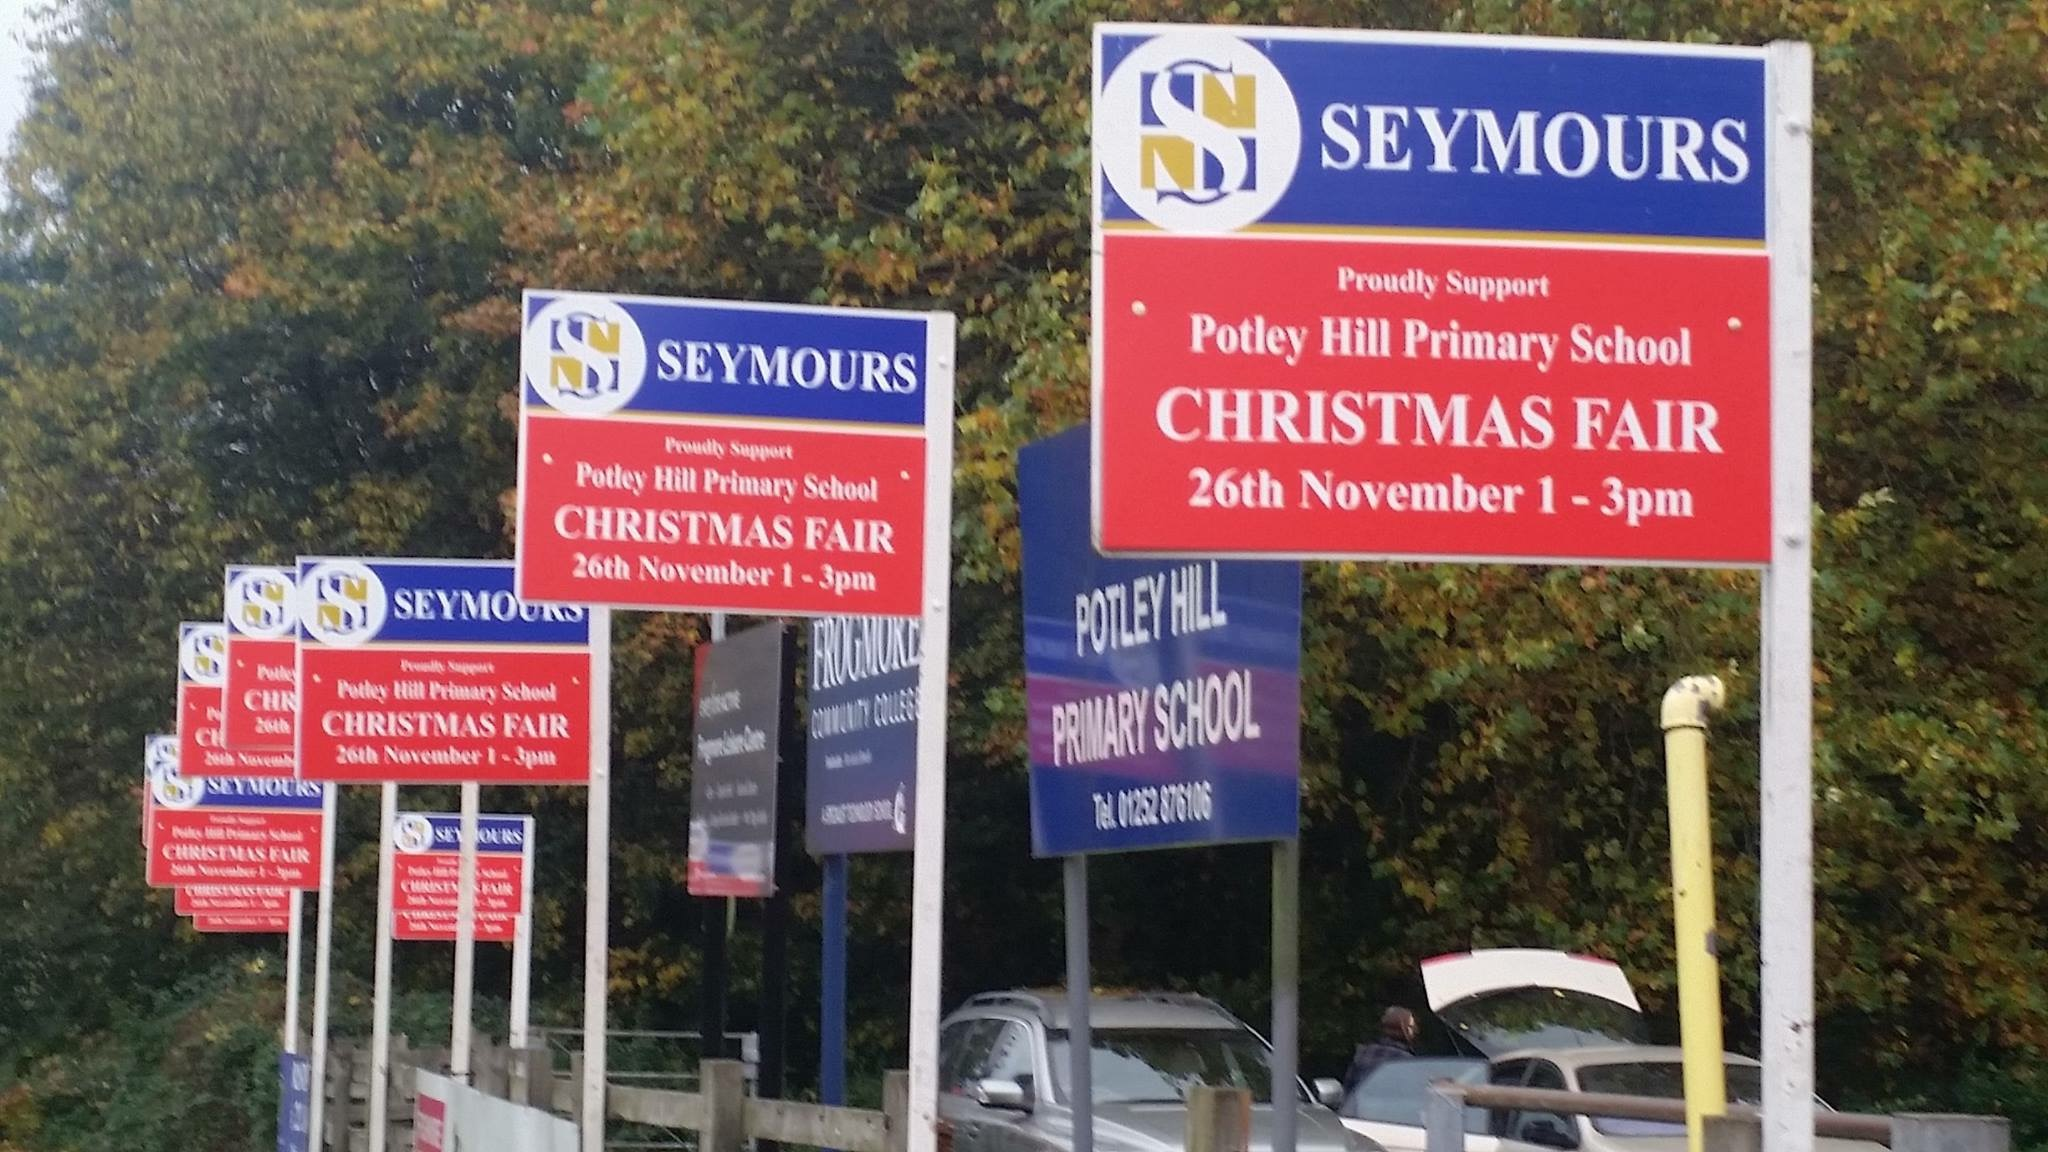 Seymours Land And New Homes